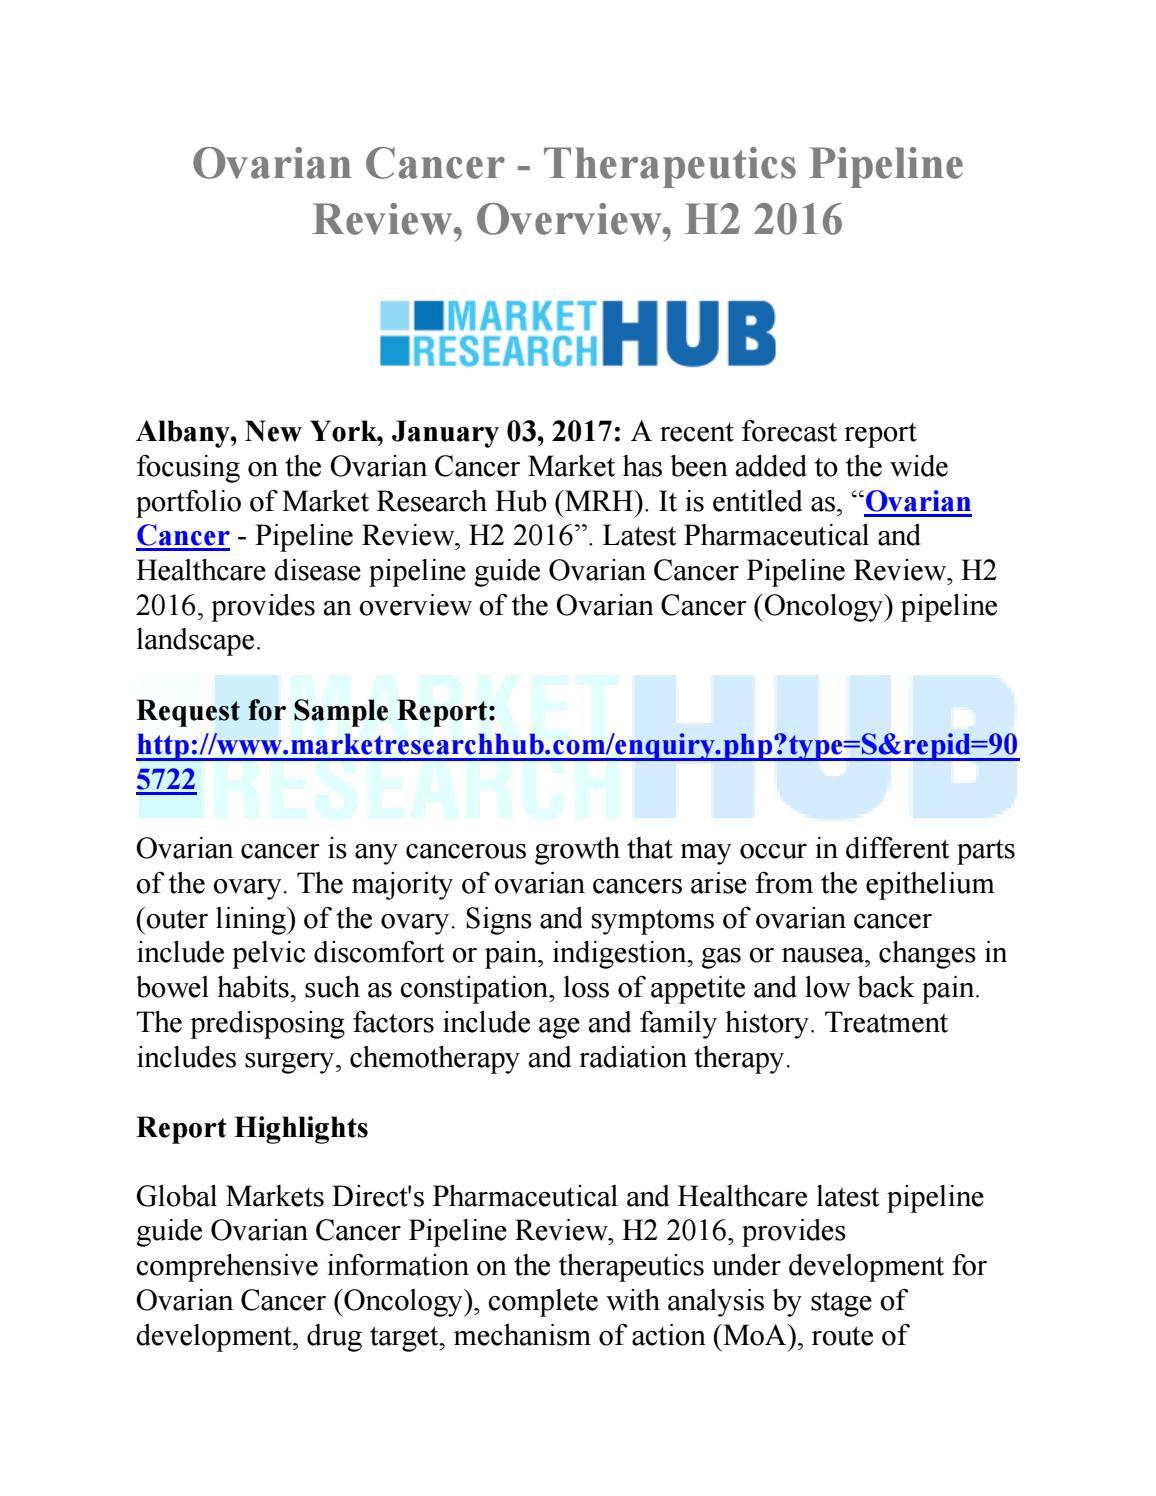 Ovarian Cancer Pipeline Review H2 2016 By Market Research Hub Issuu